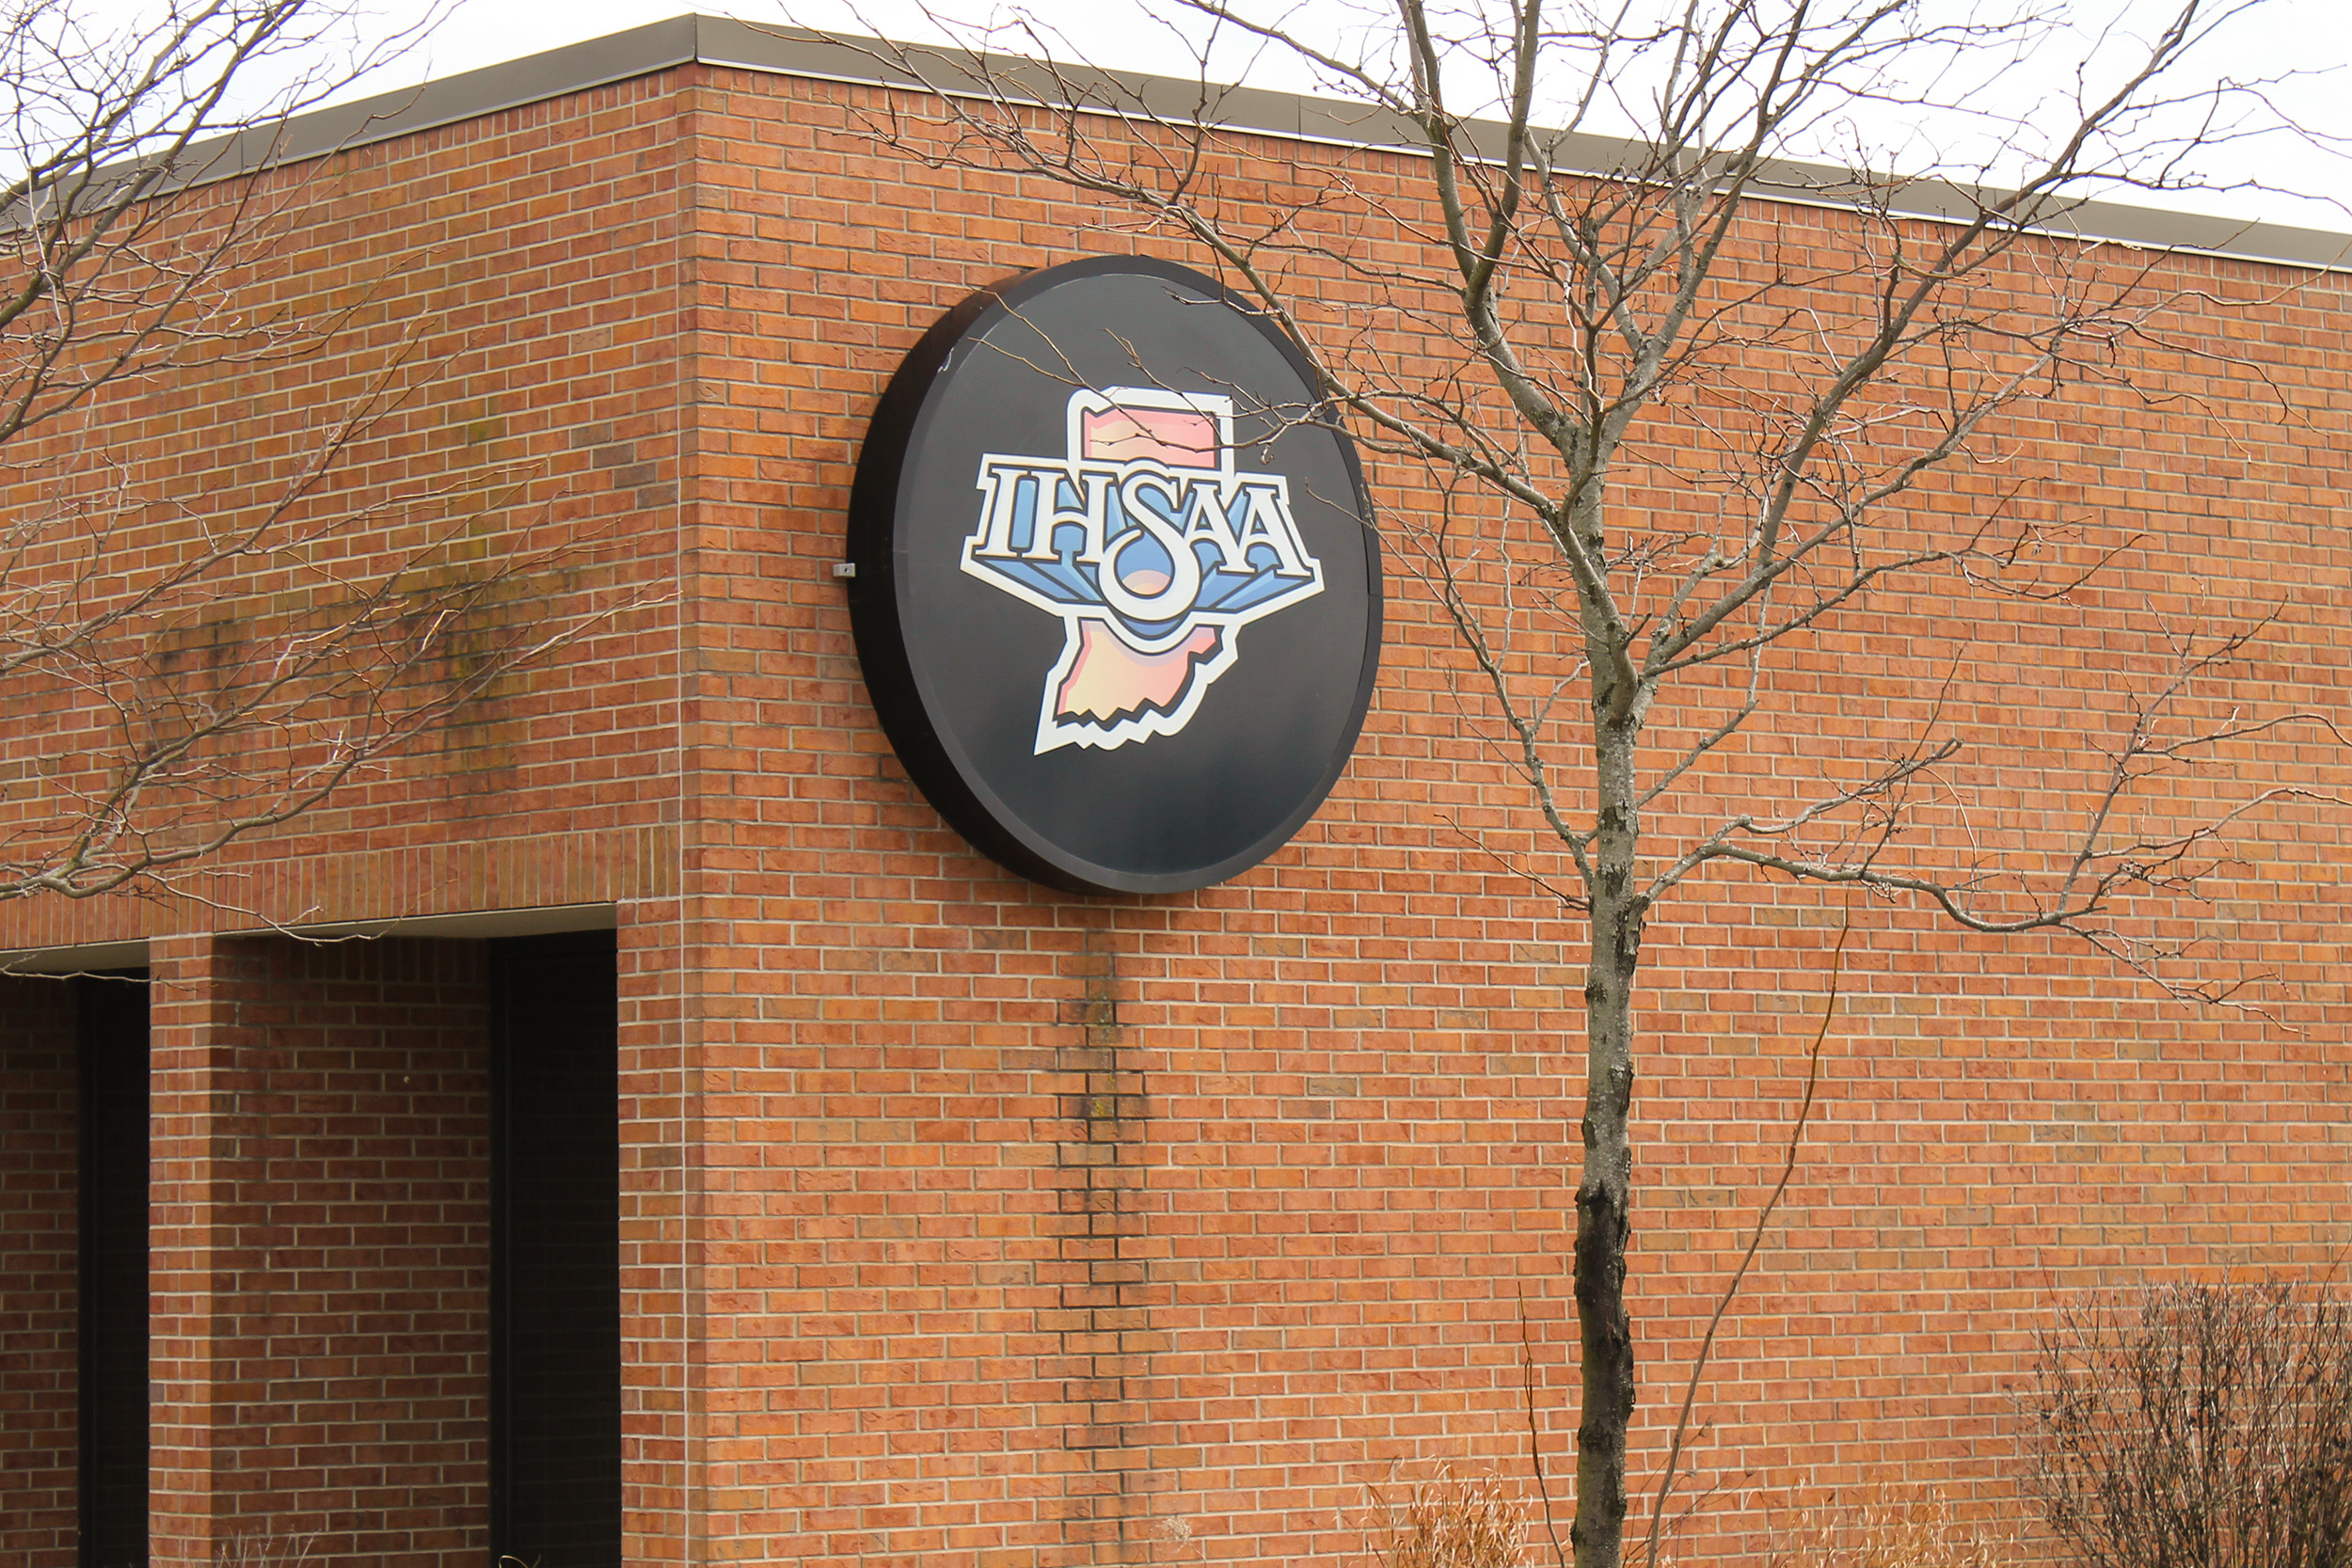 The IHSAA building.